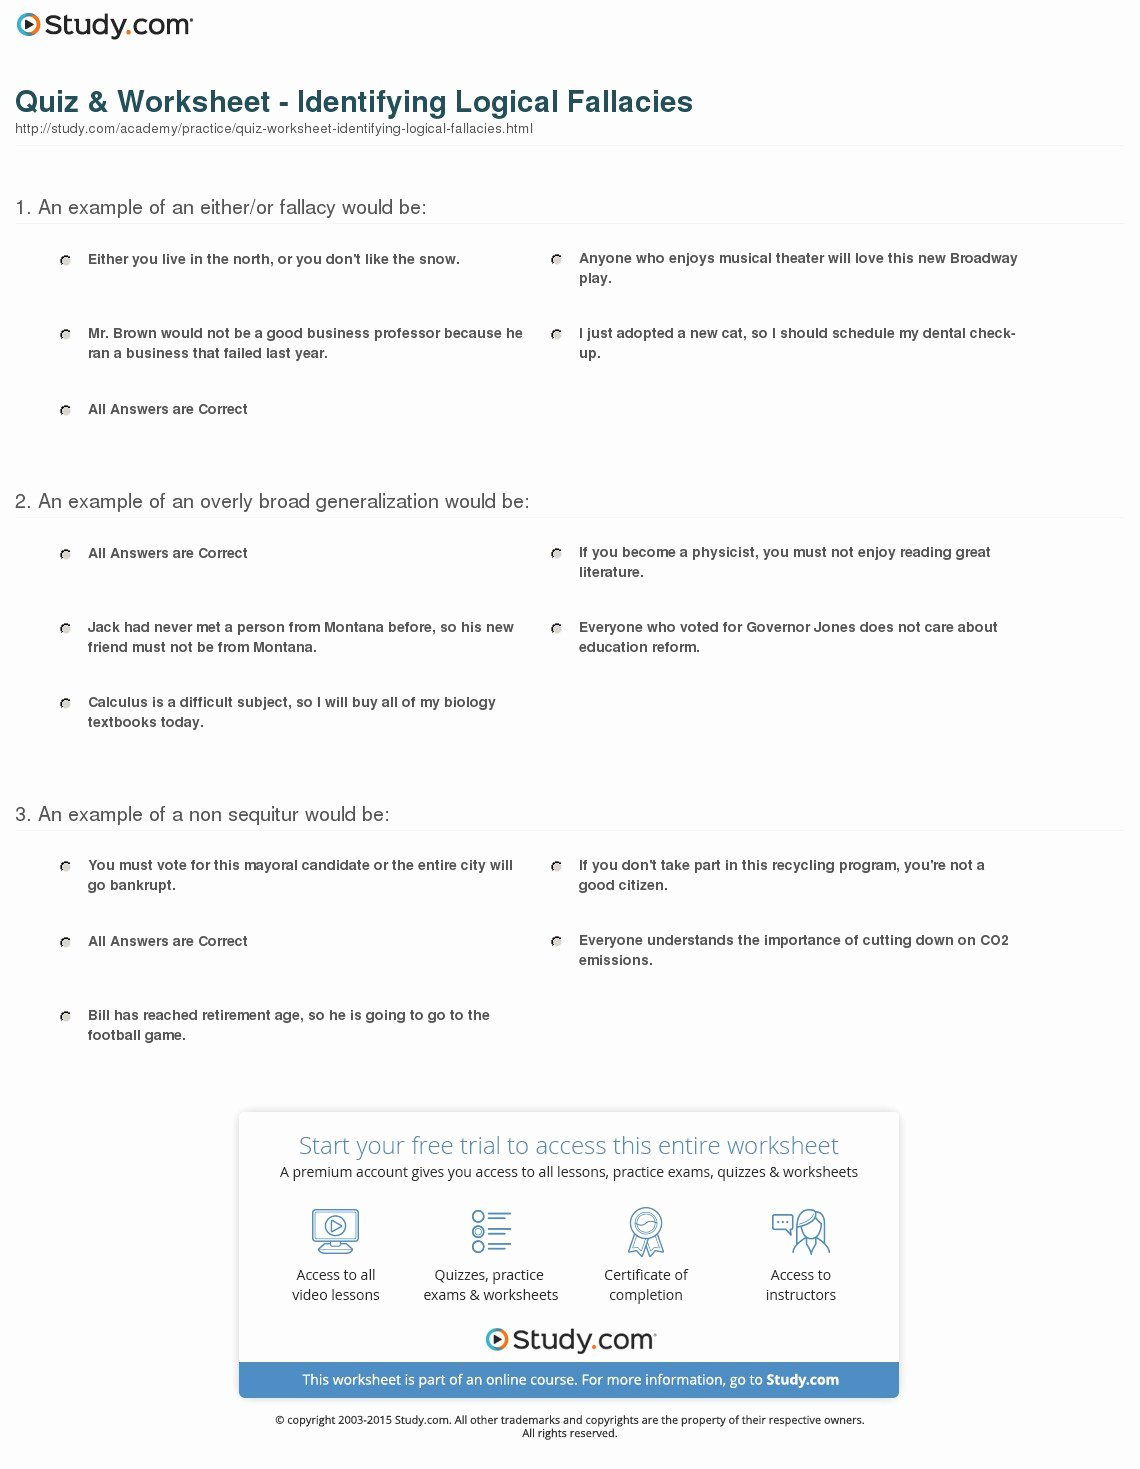 Logical Fallacies Worksheet with Answers Inspirational Quiz & Worksheet Identifying Logical Fallacies